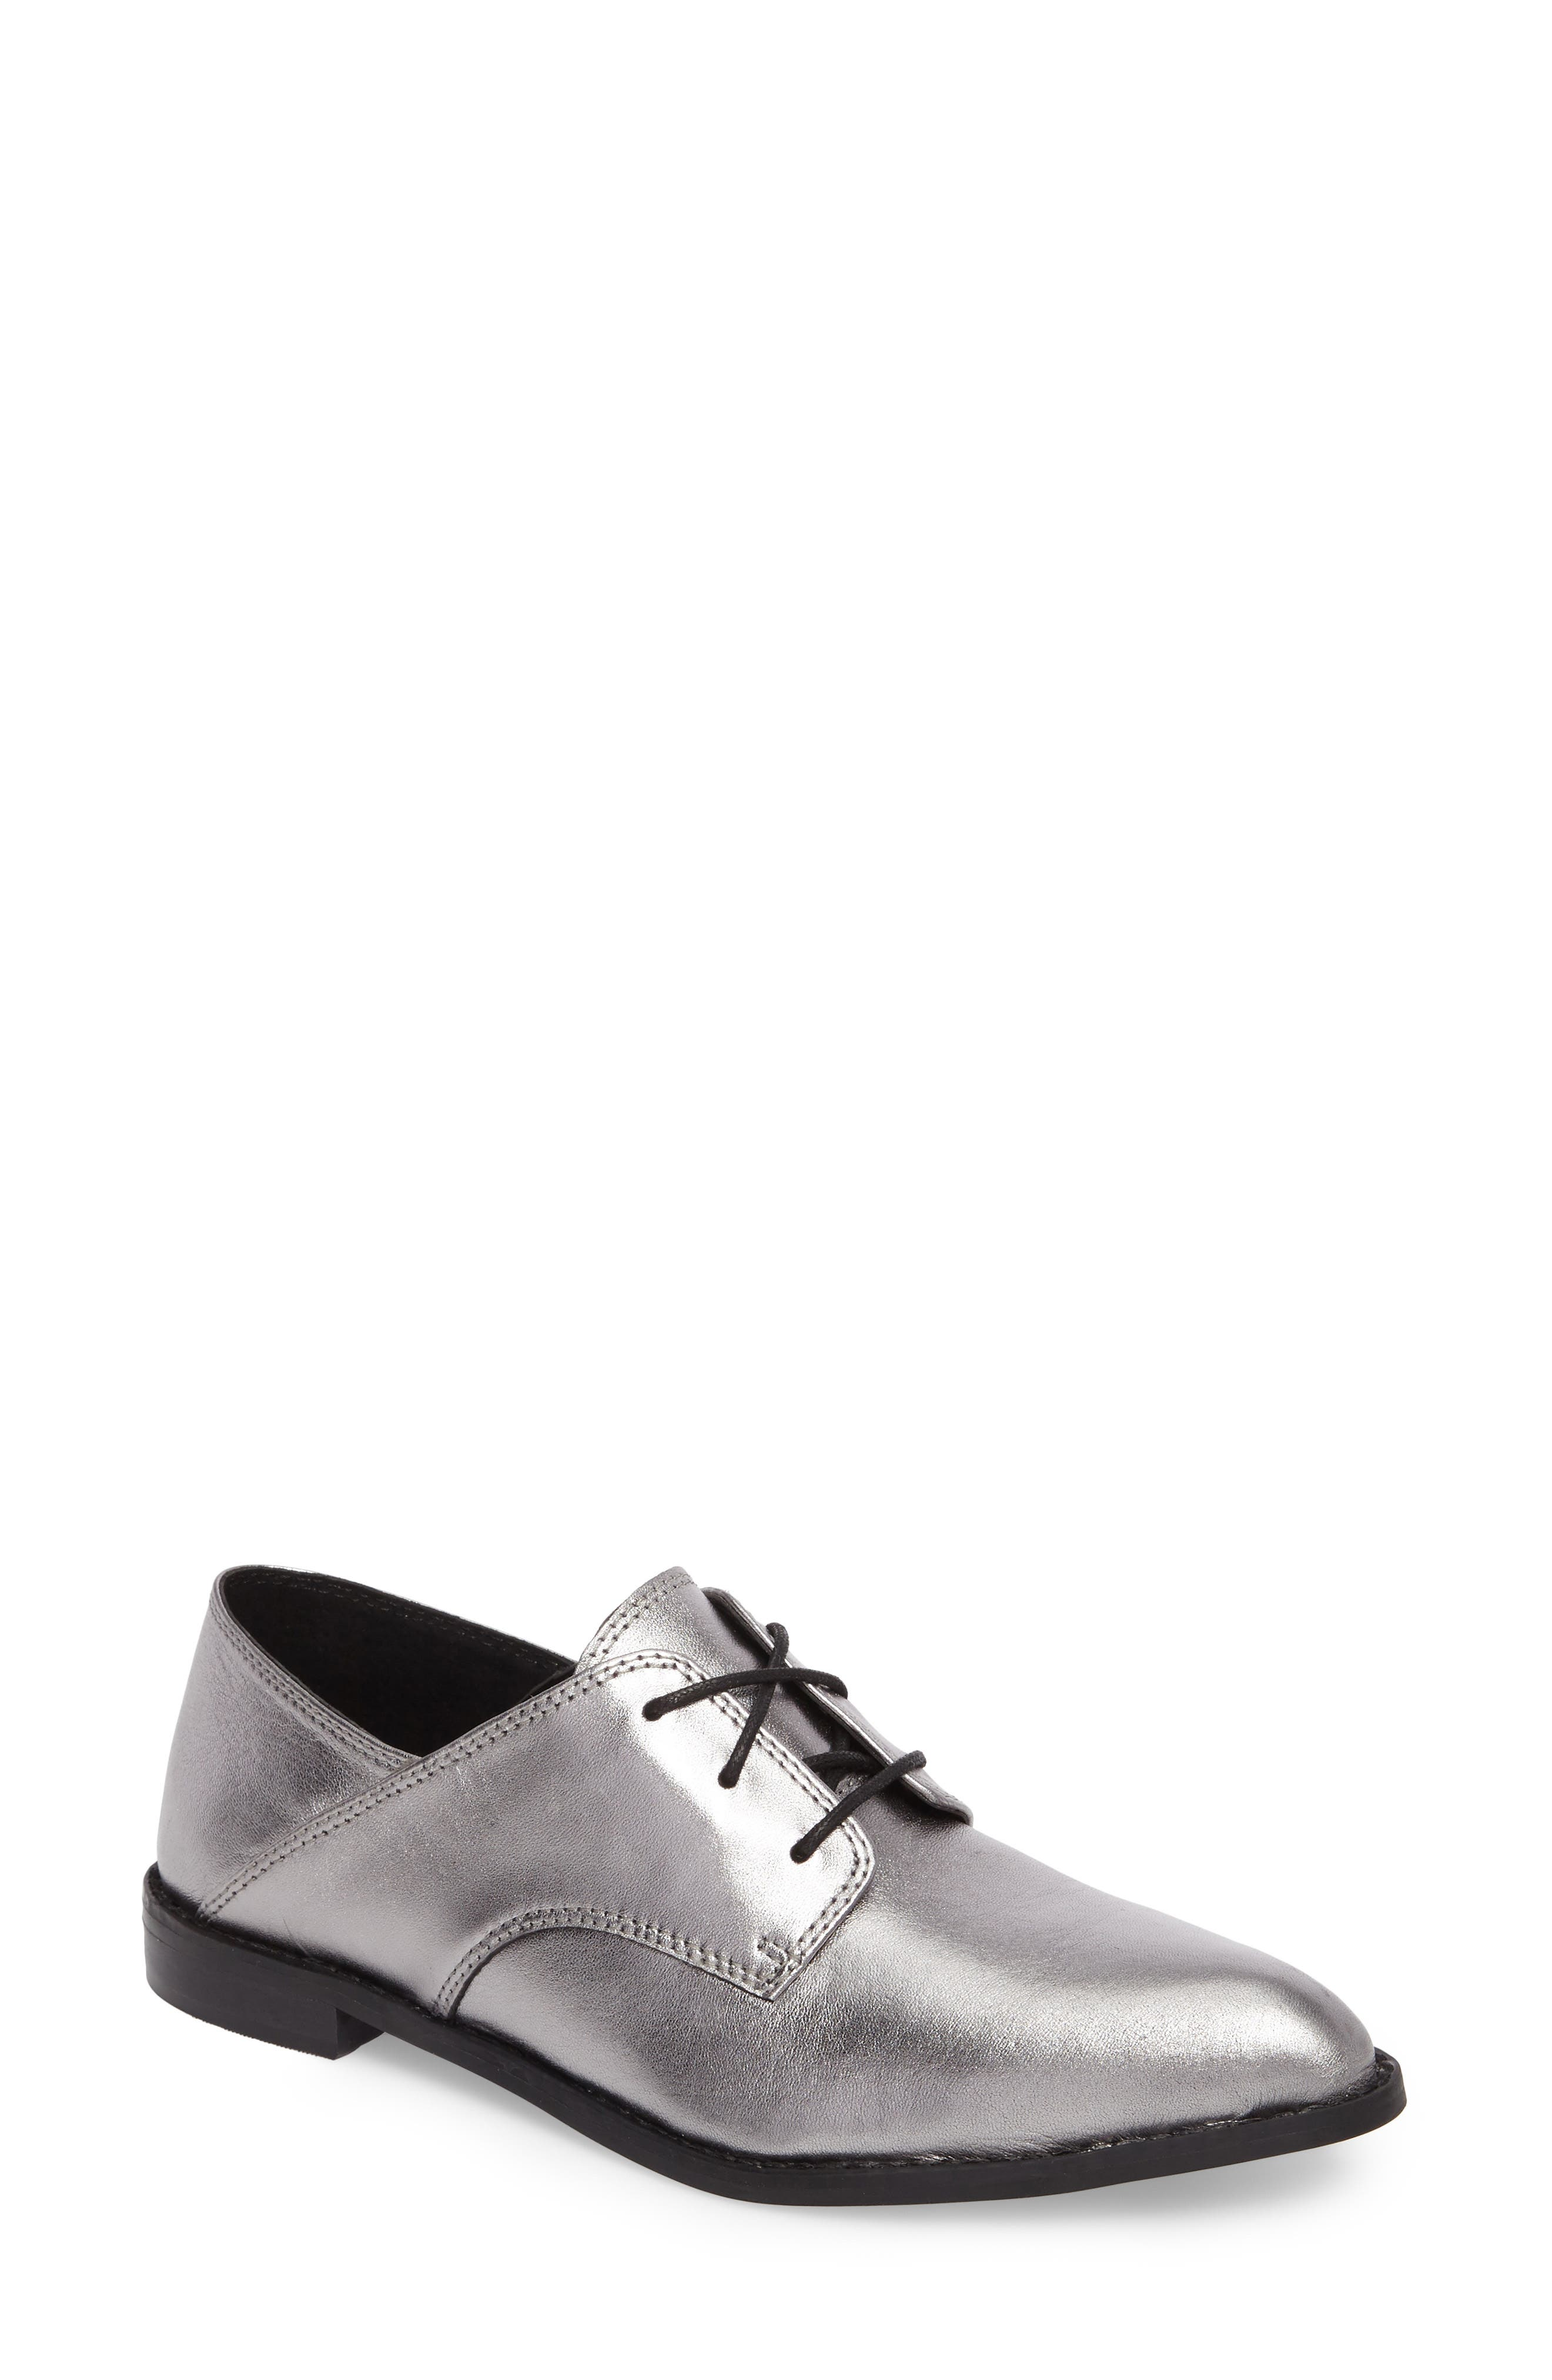 Corbin Oxford,                         Main,                         color, Pewter Leather